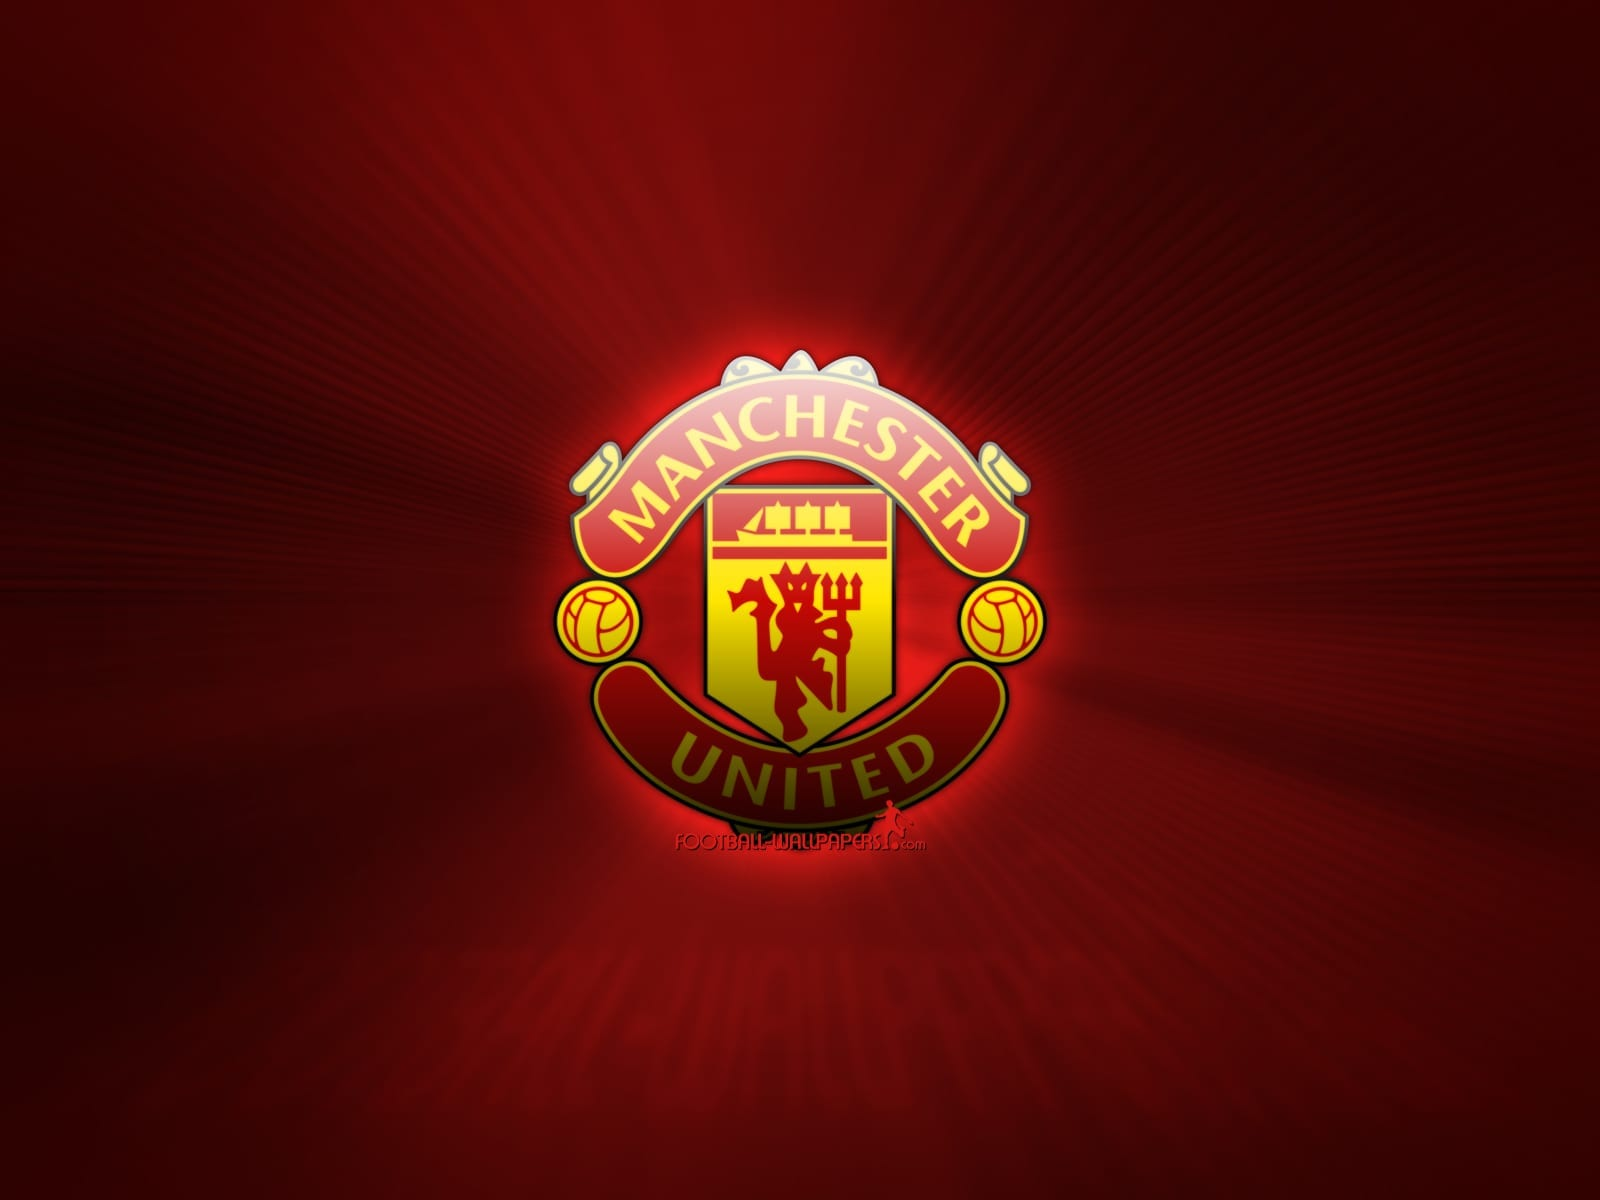 Pronostic football : CFR Cluj vs Manchester United